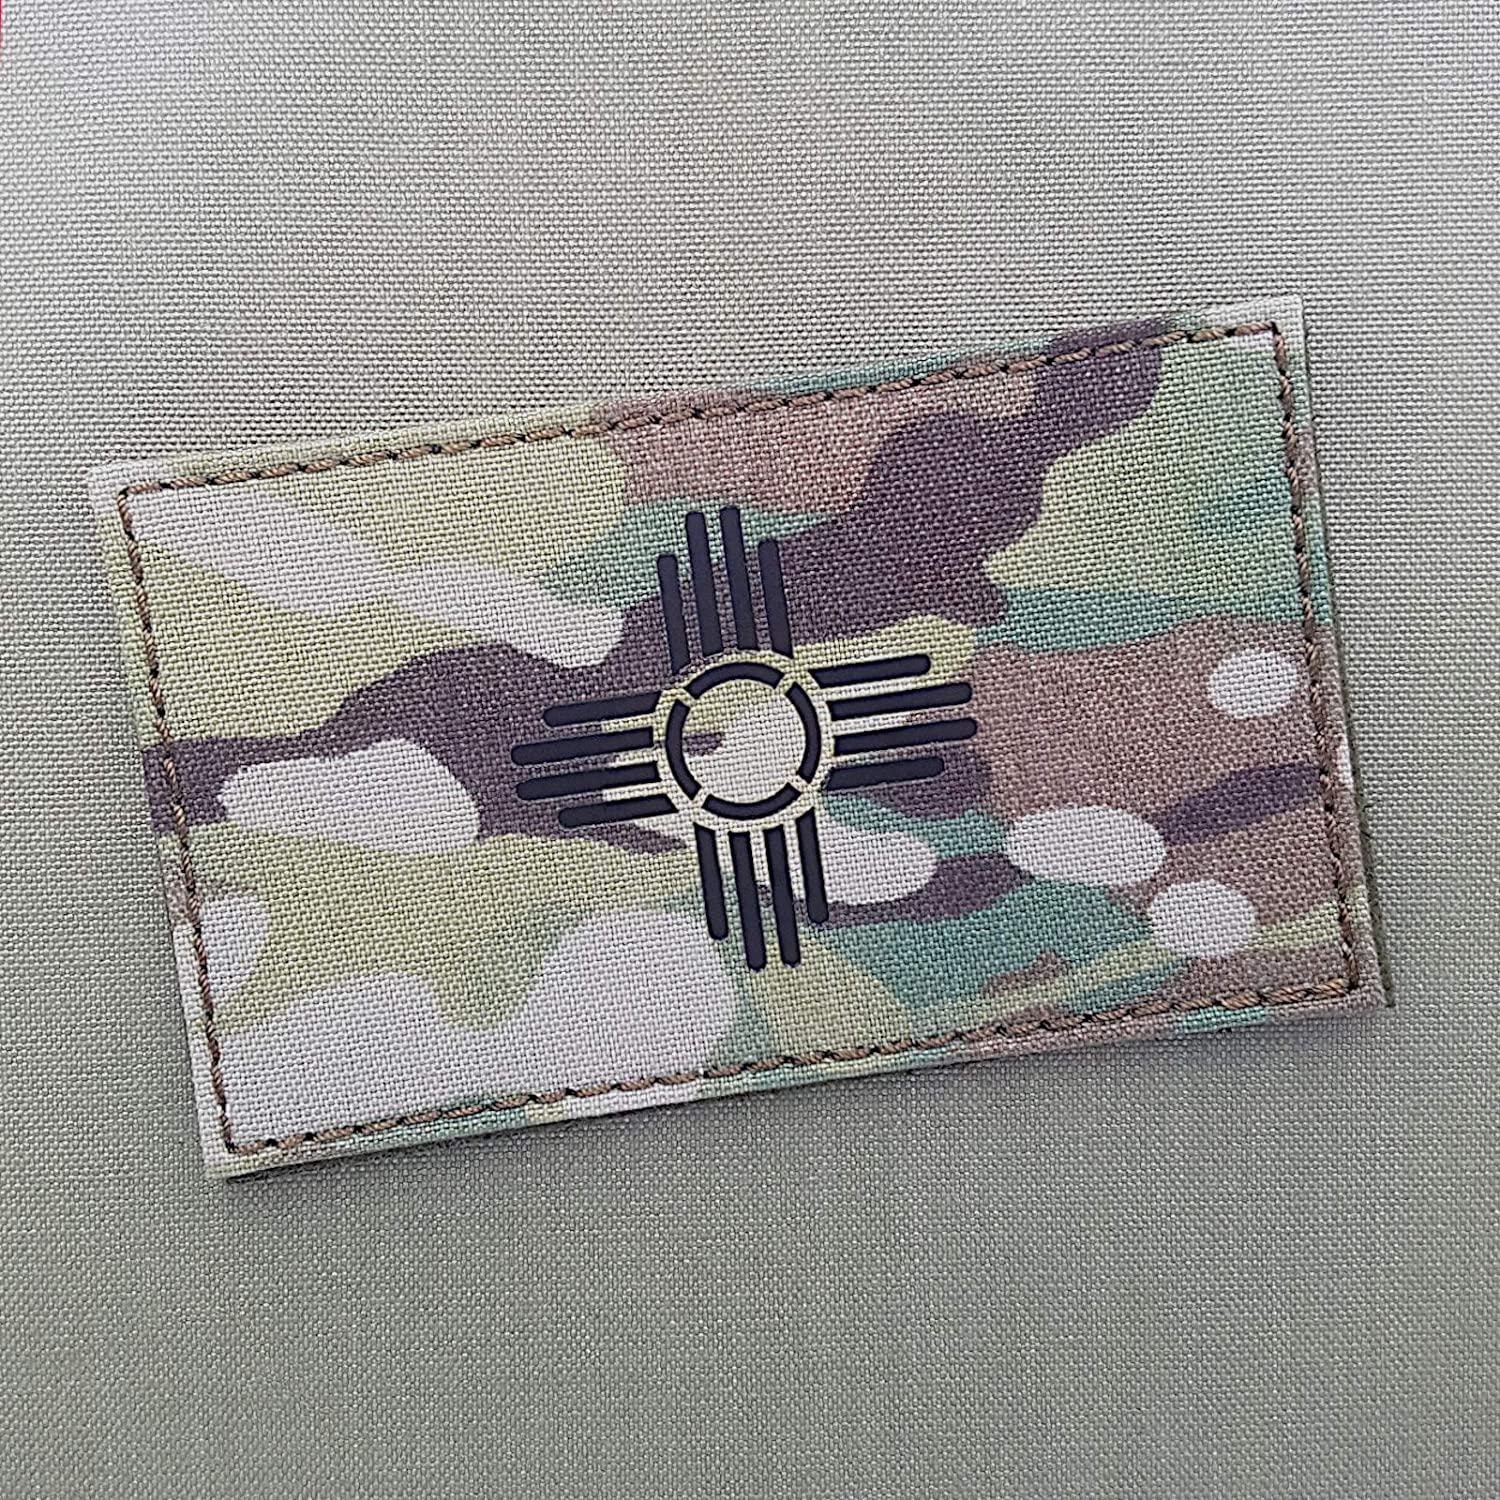 Tactical Freaky IR Under Our shop most popular blast sales Jumbo 3x5 New NM State Mexico OCP Multicam Fl